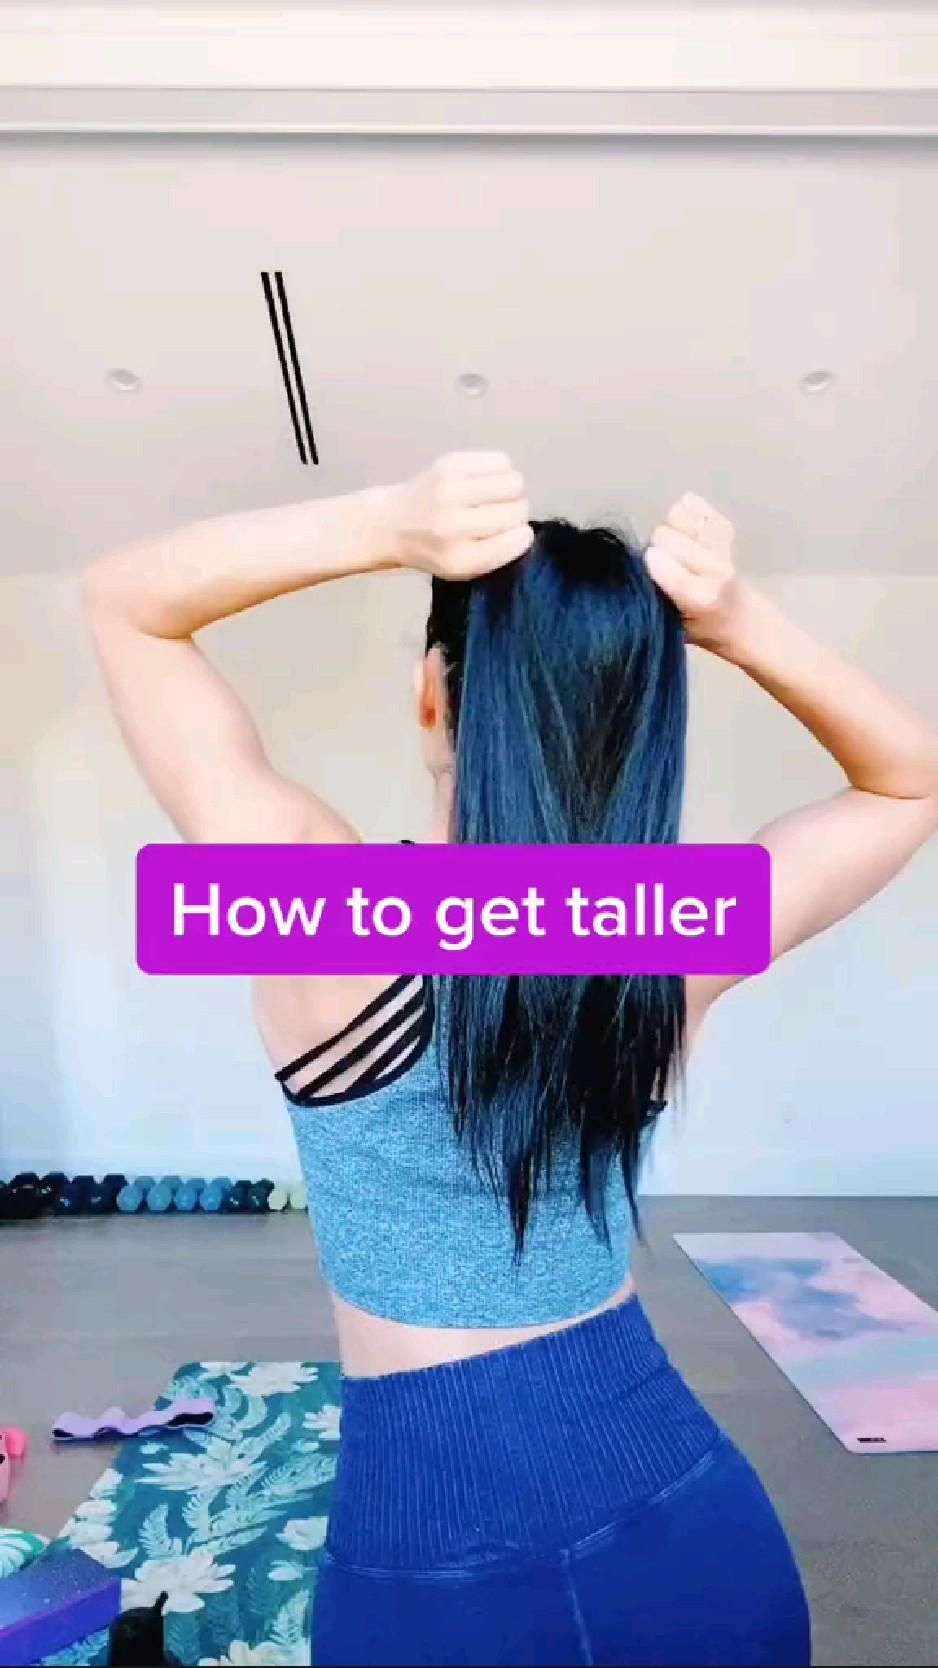 How to get taller!